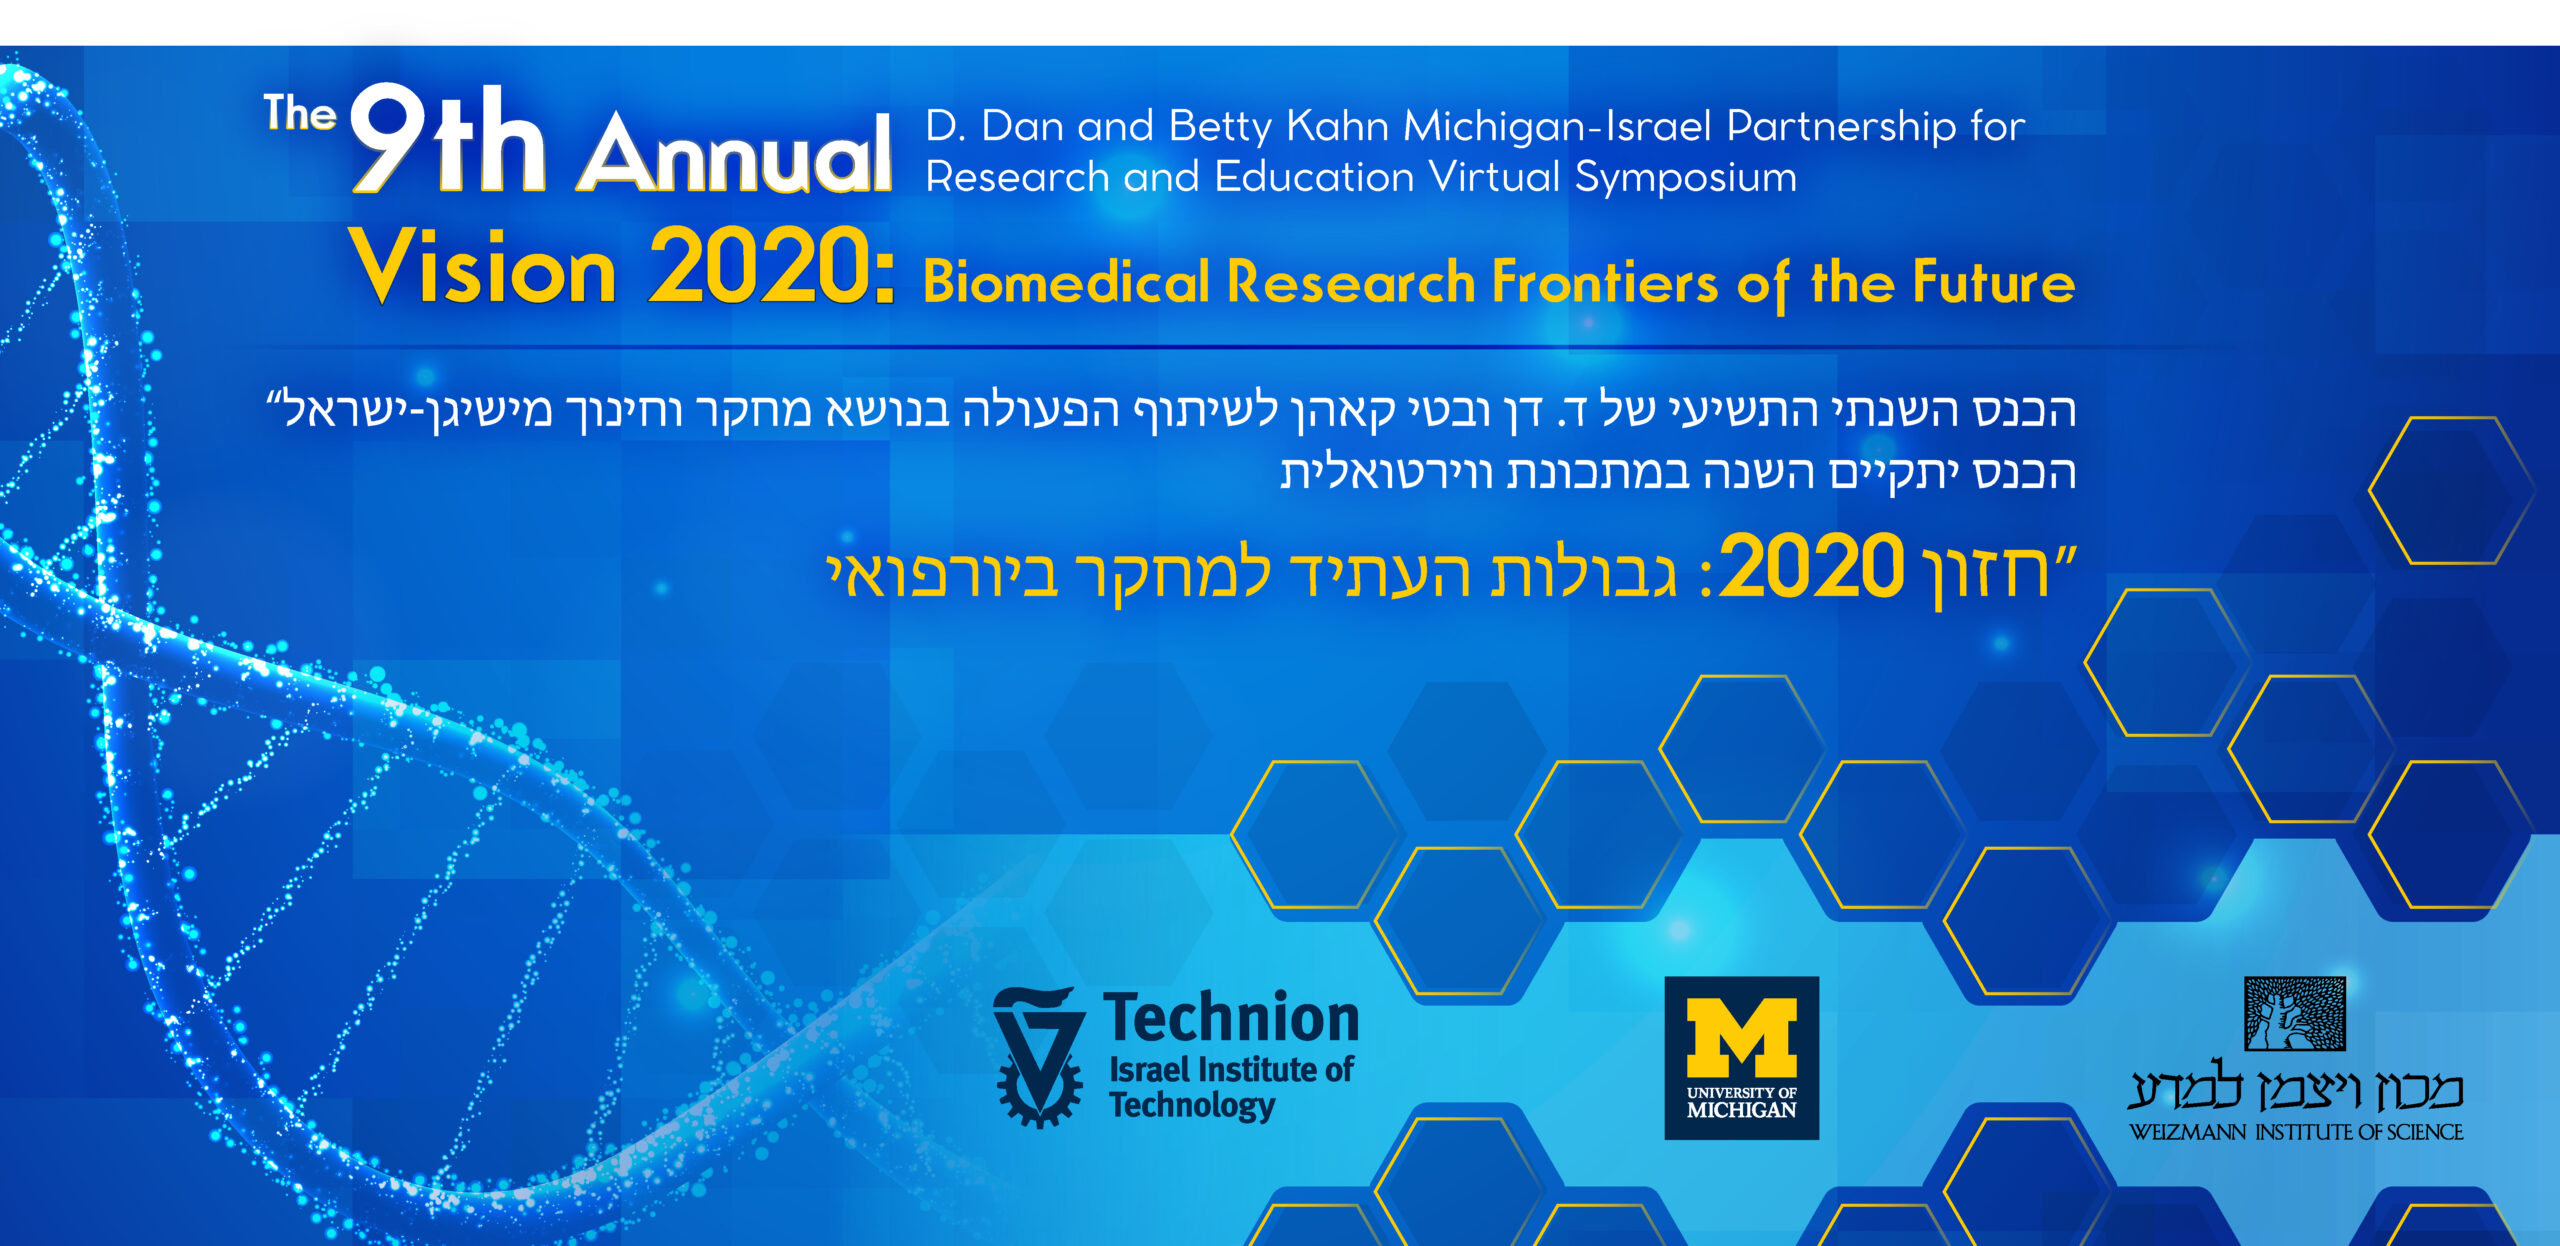 The 9th Annual Michigan-Israel Partnership December 2020